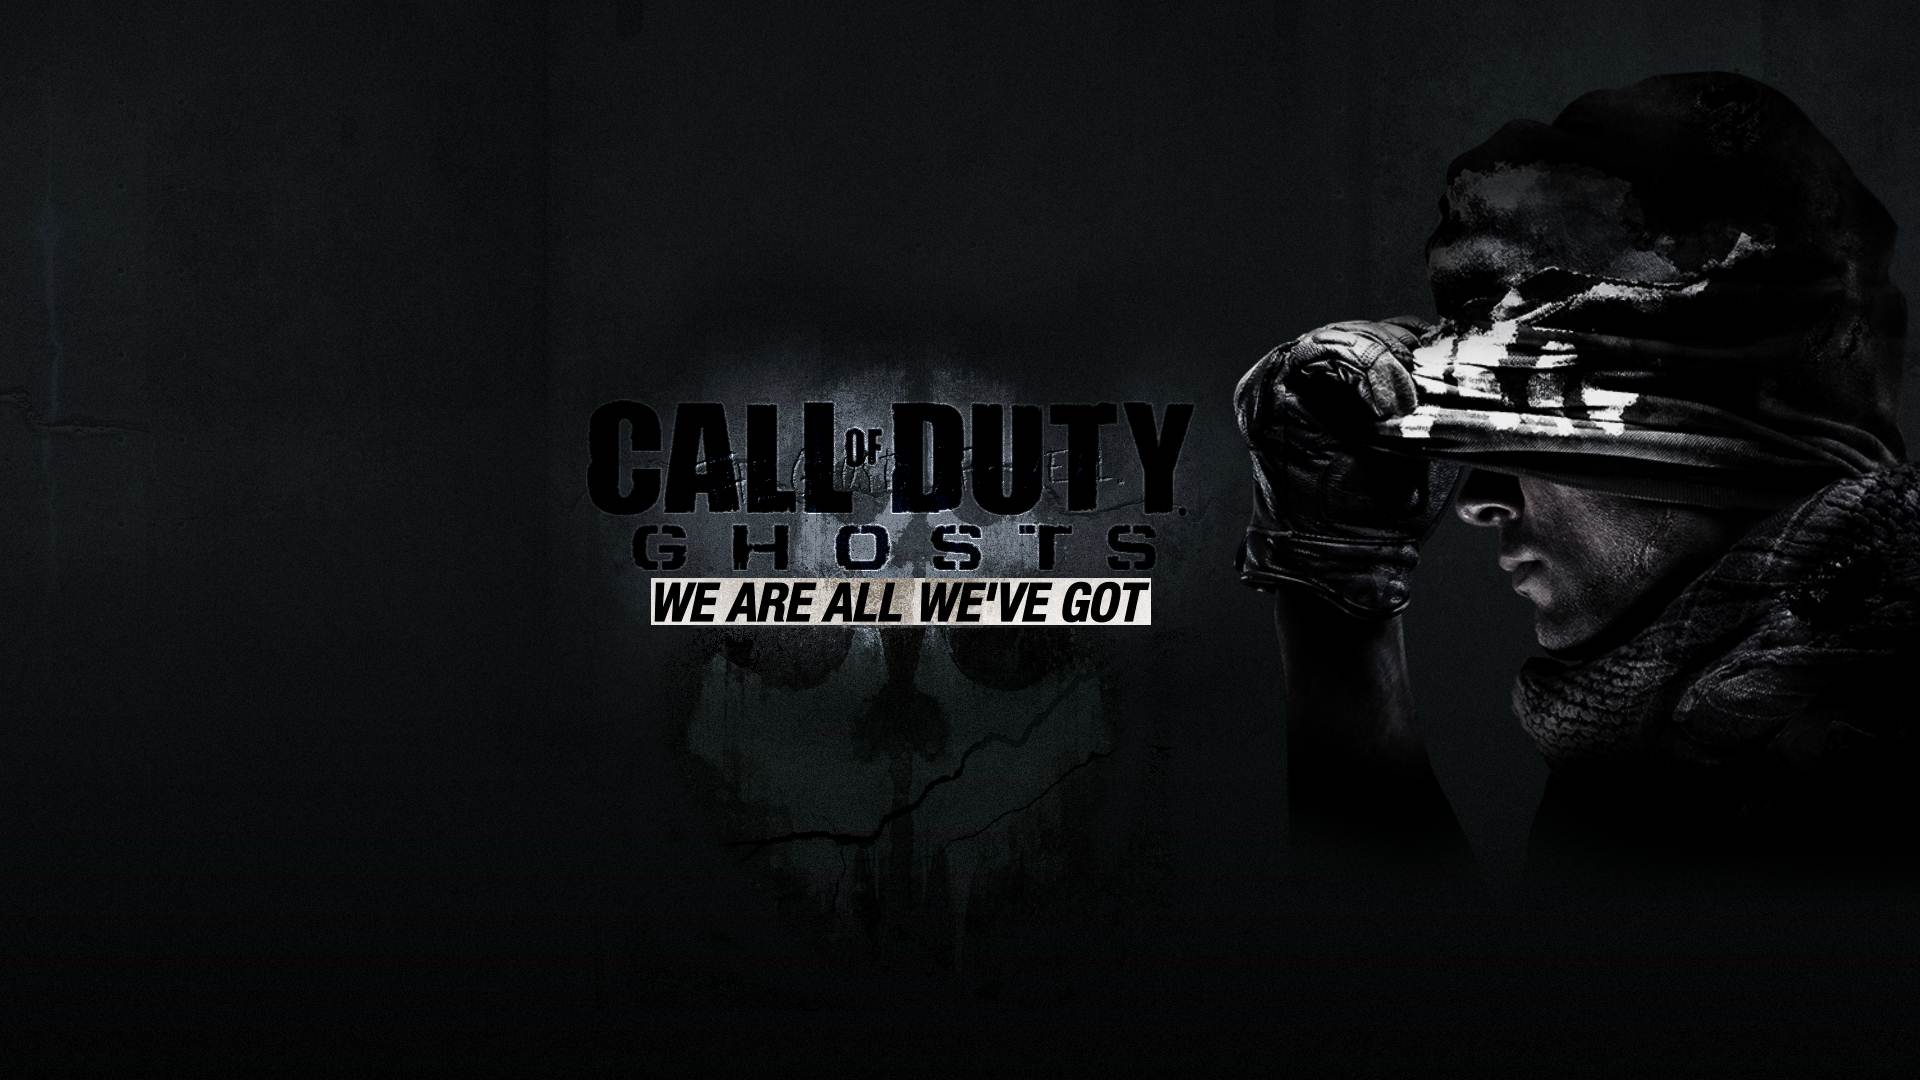 call of duty ghosts wallpaper « GamingBolt.com: Video Game ...